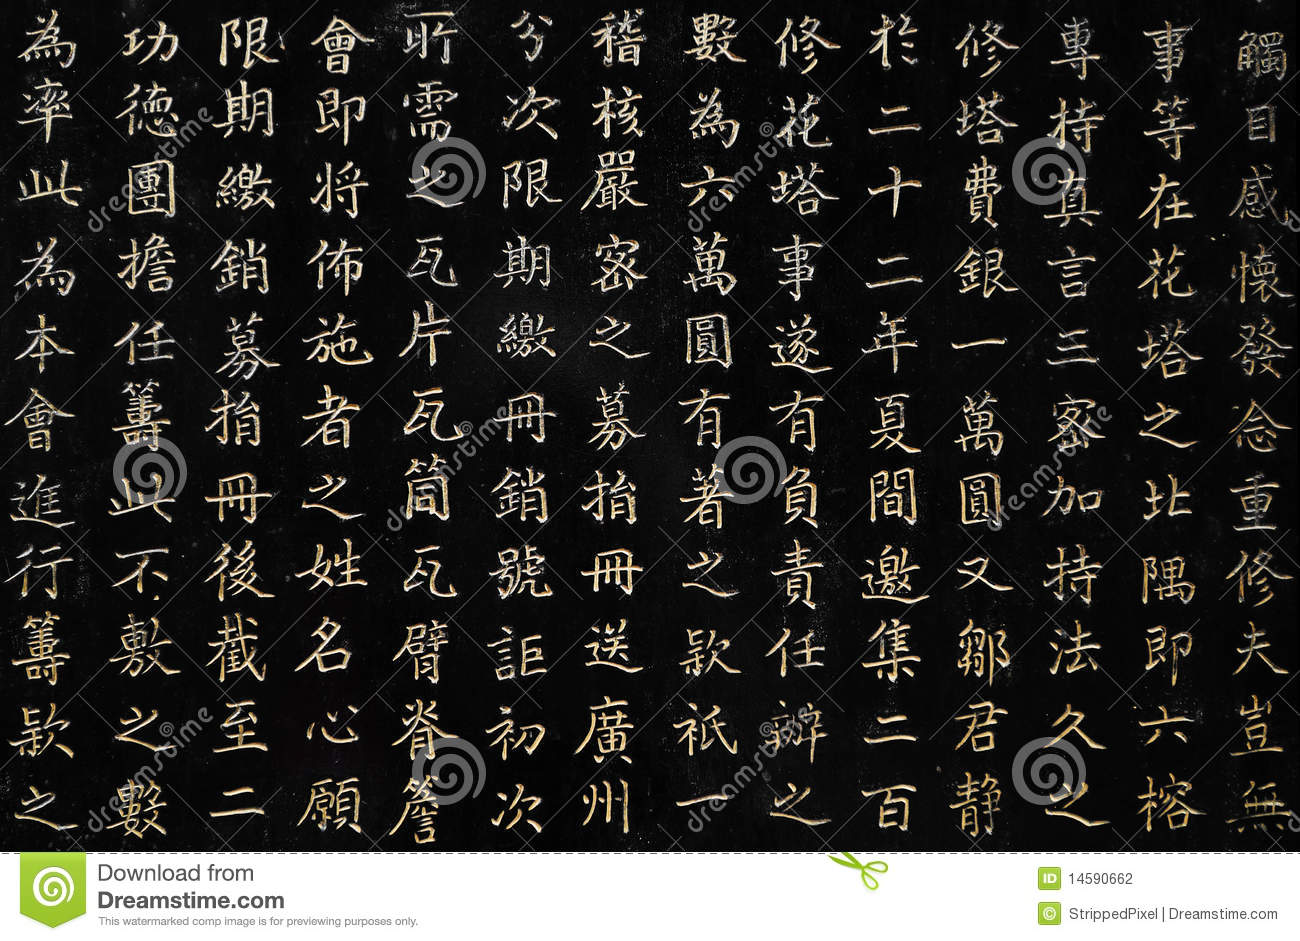 Chinese Characters Close-Up